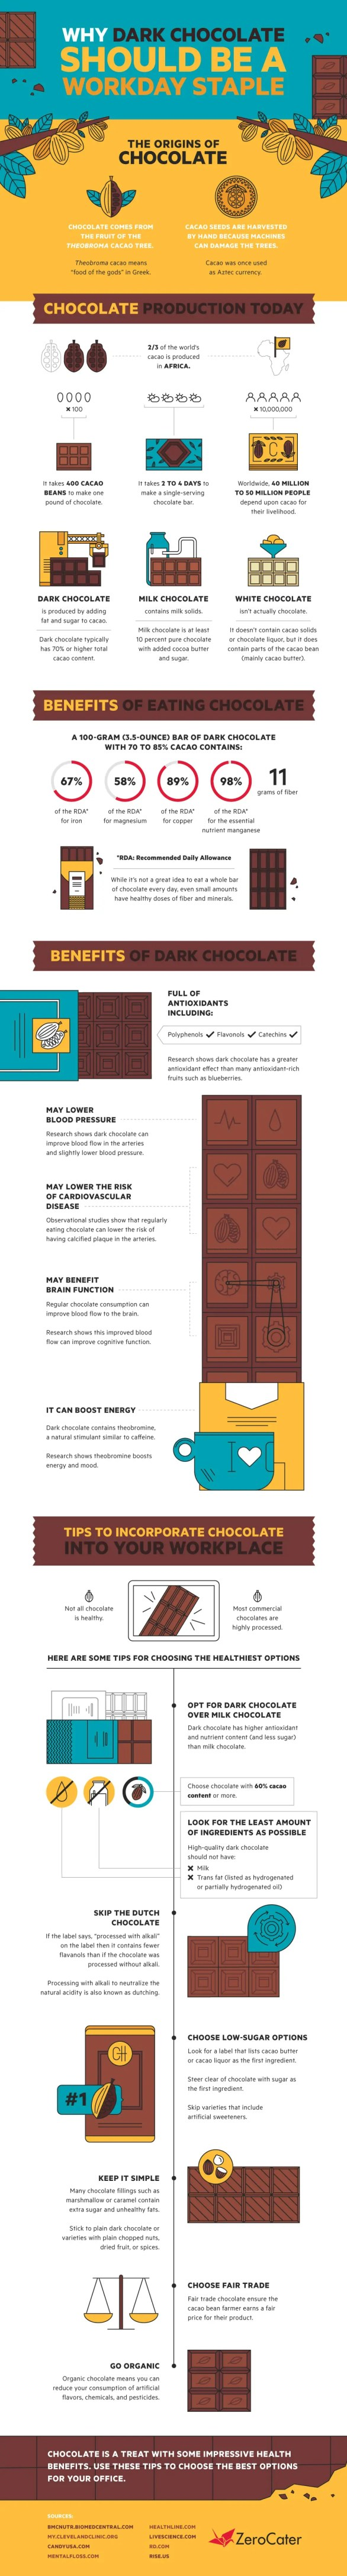 Why Dark Chocolate Should be a Workday Staple Infographic